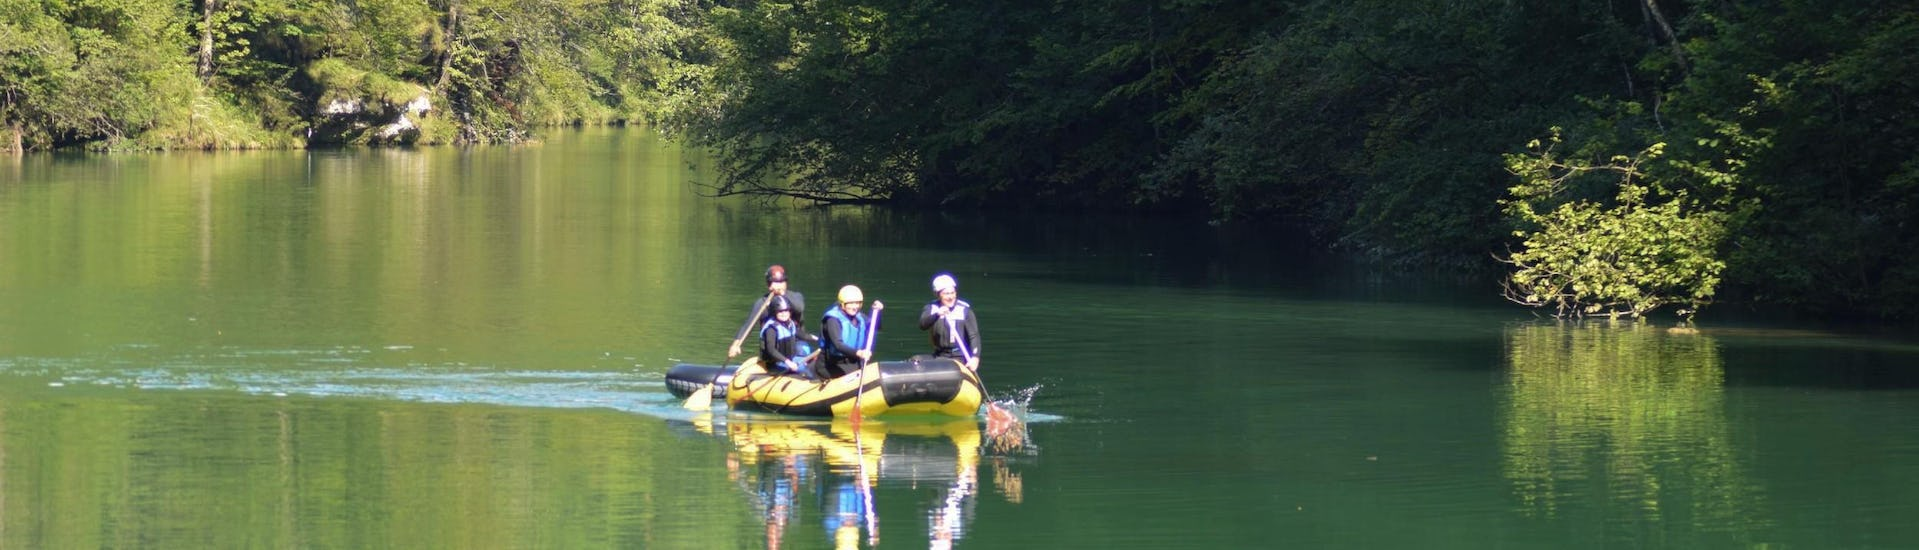 rafting-on-the-salza-for-families-deep-roots-adventures-hero